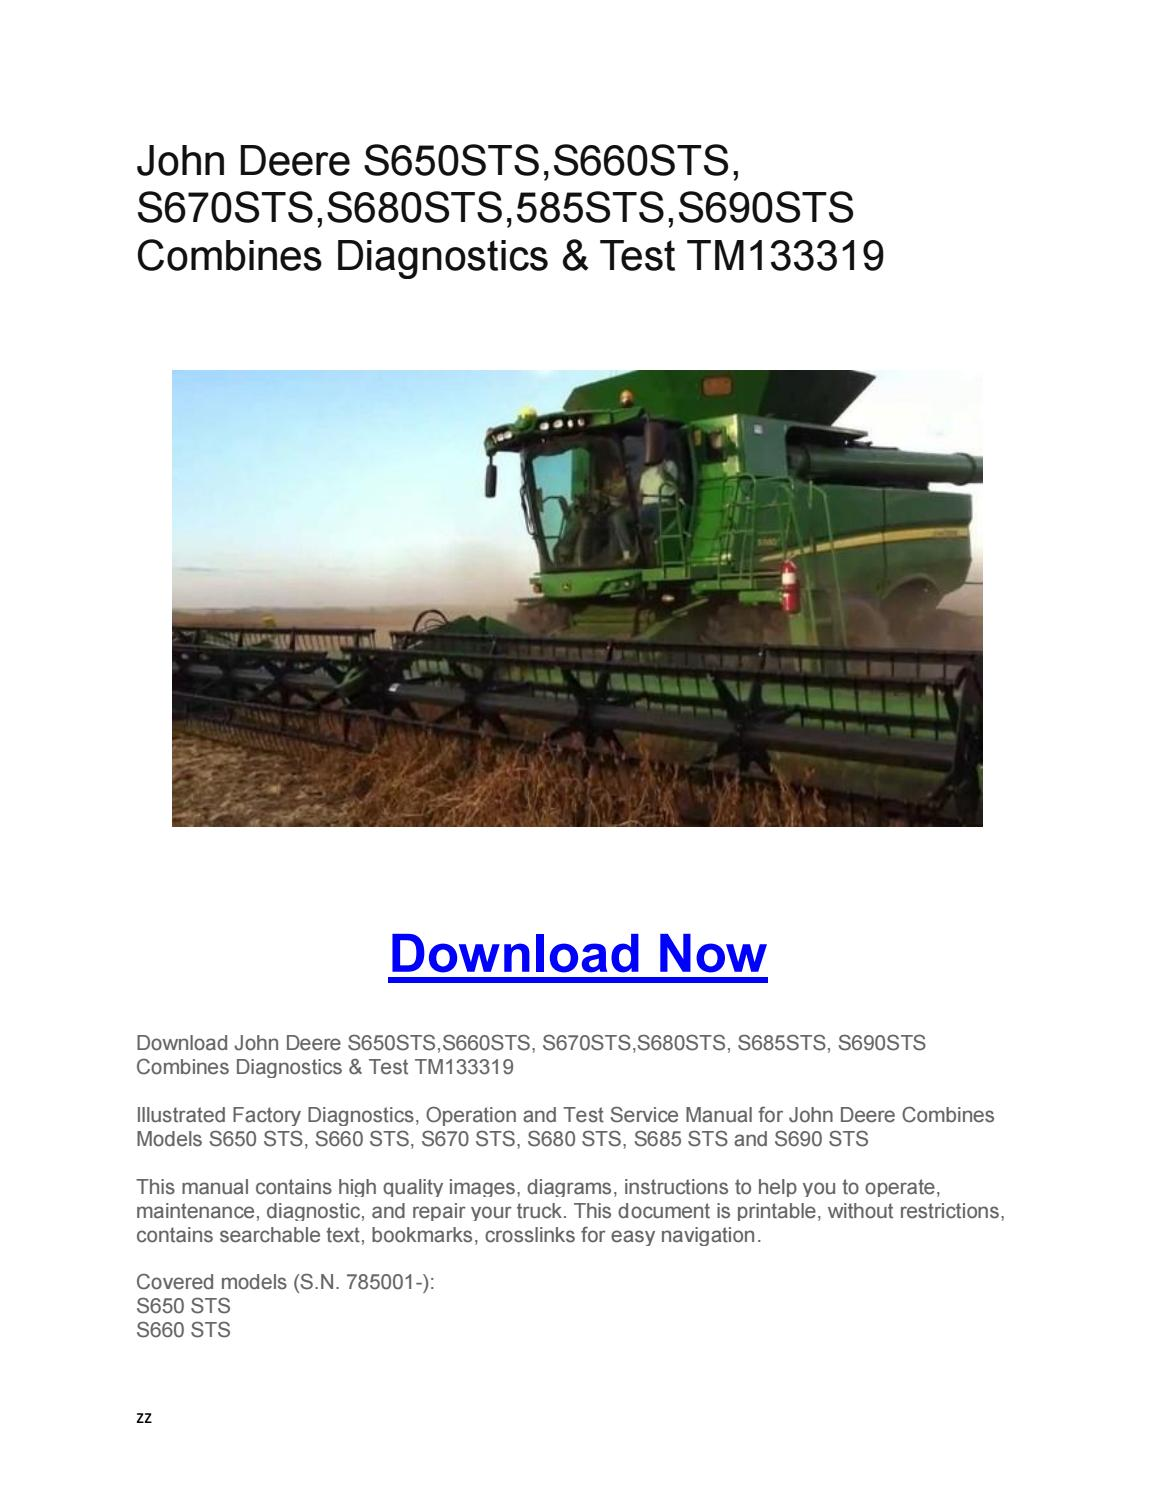 John Deere S650STS,S660STS, S670STS,S680STS,585STS,S690STS Combines  Diagnostics & Test TM133319 by Larry Sprouse - issuu